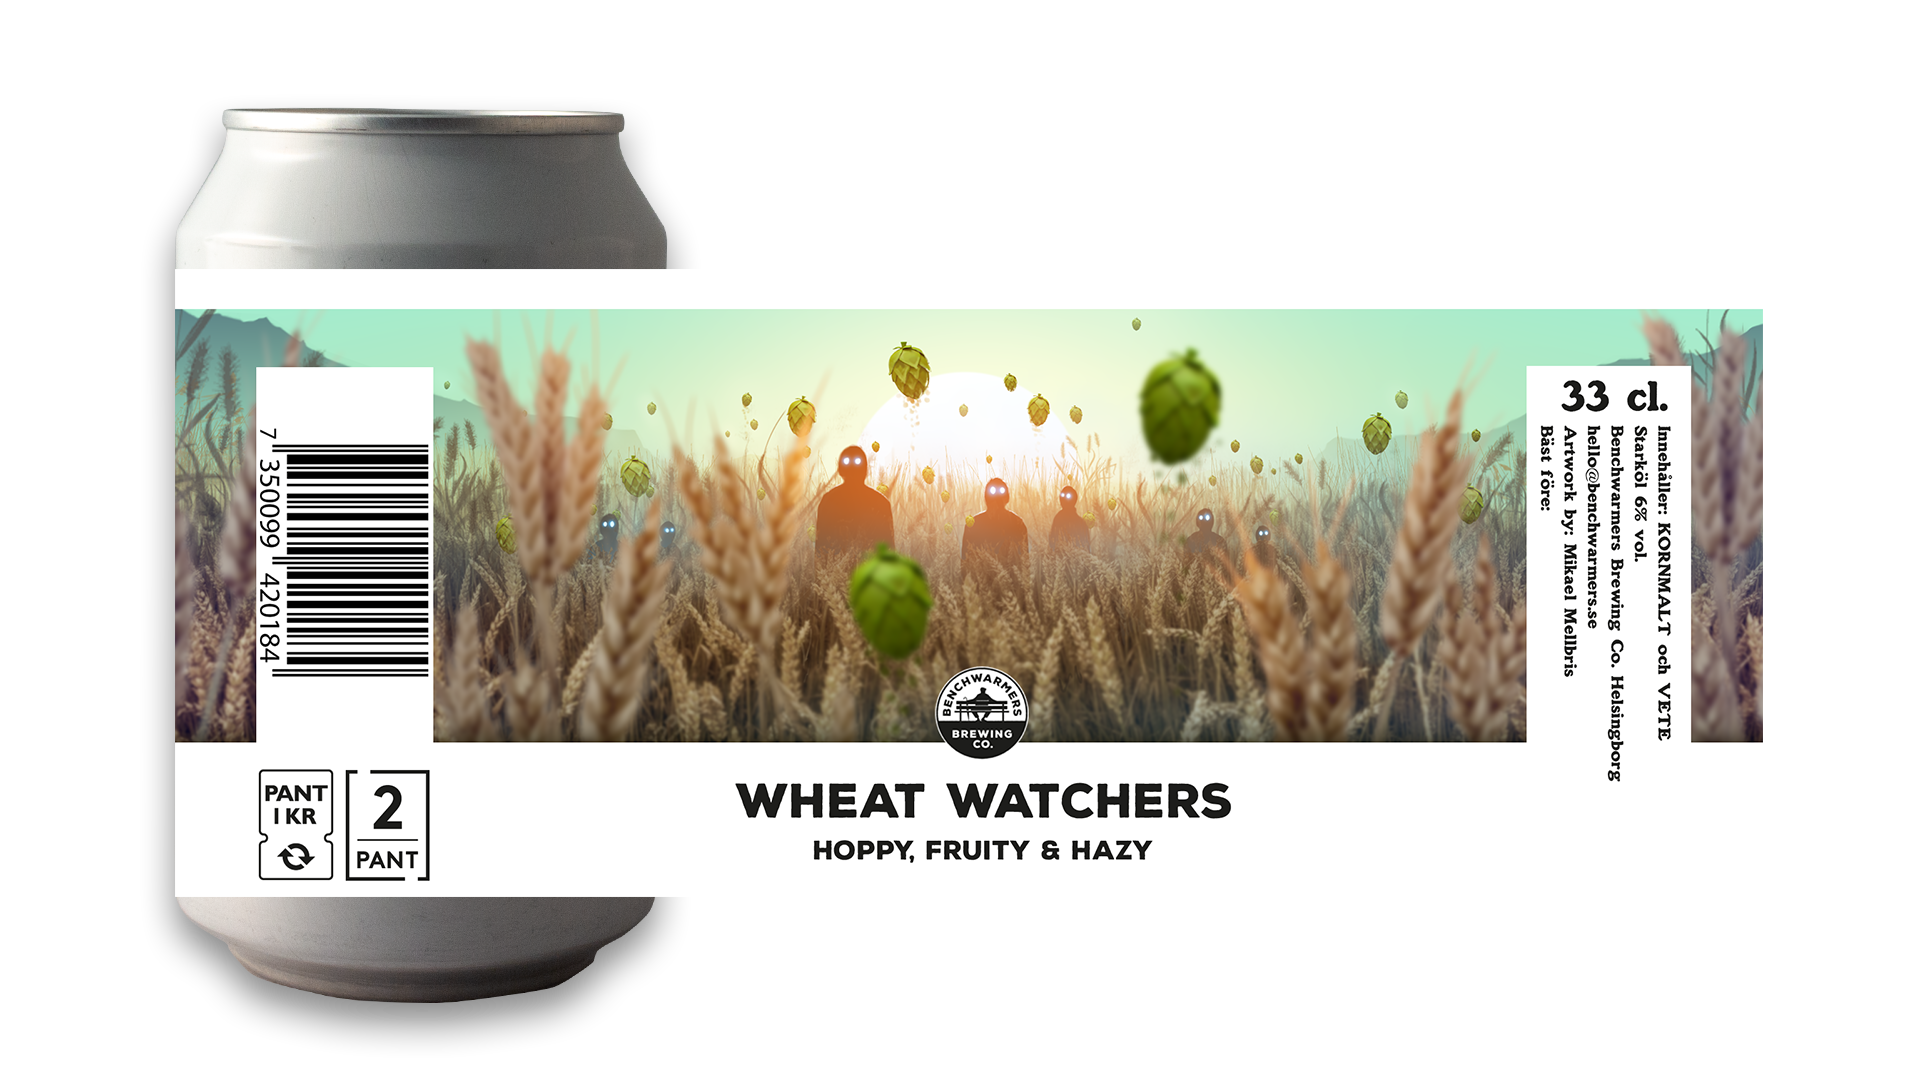 Benchwarmers Wheat watchers